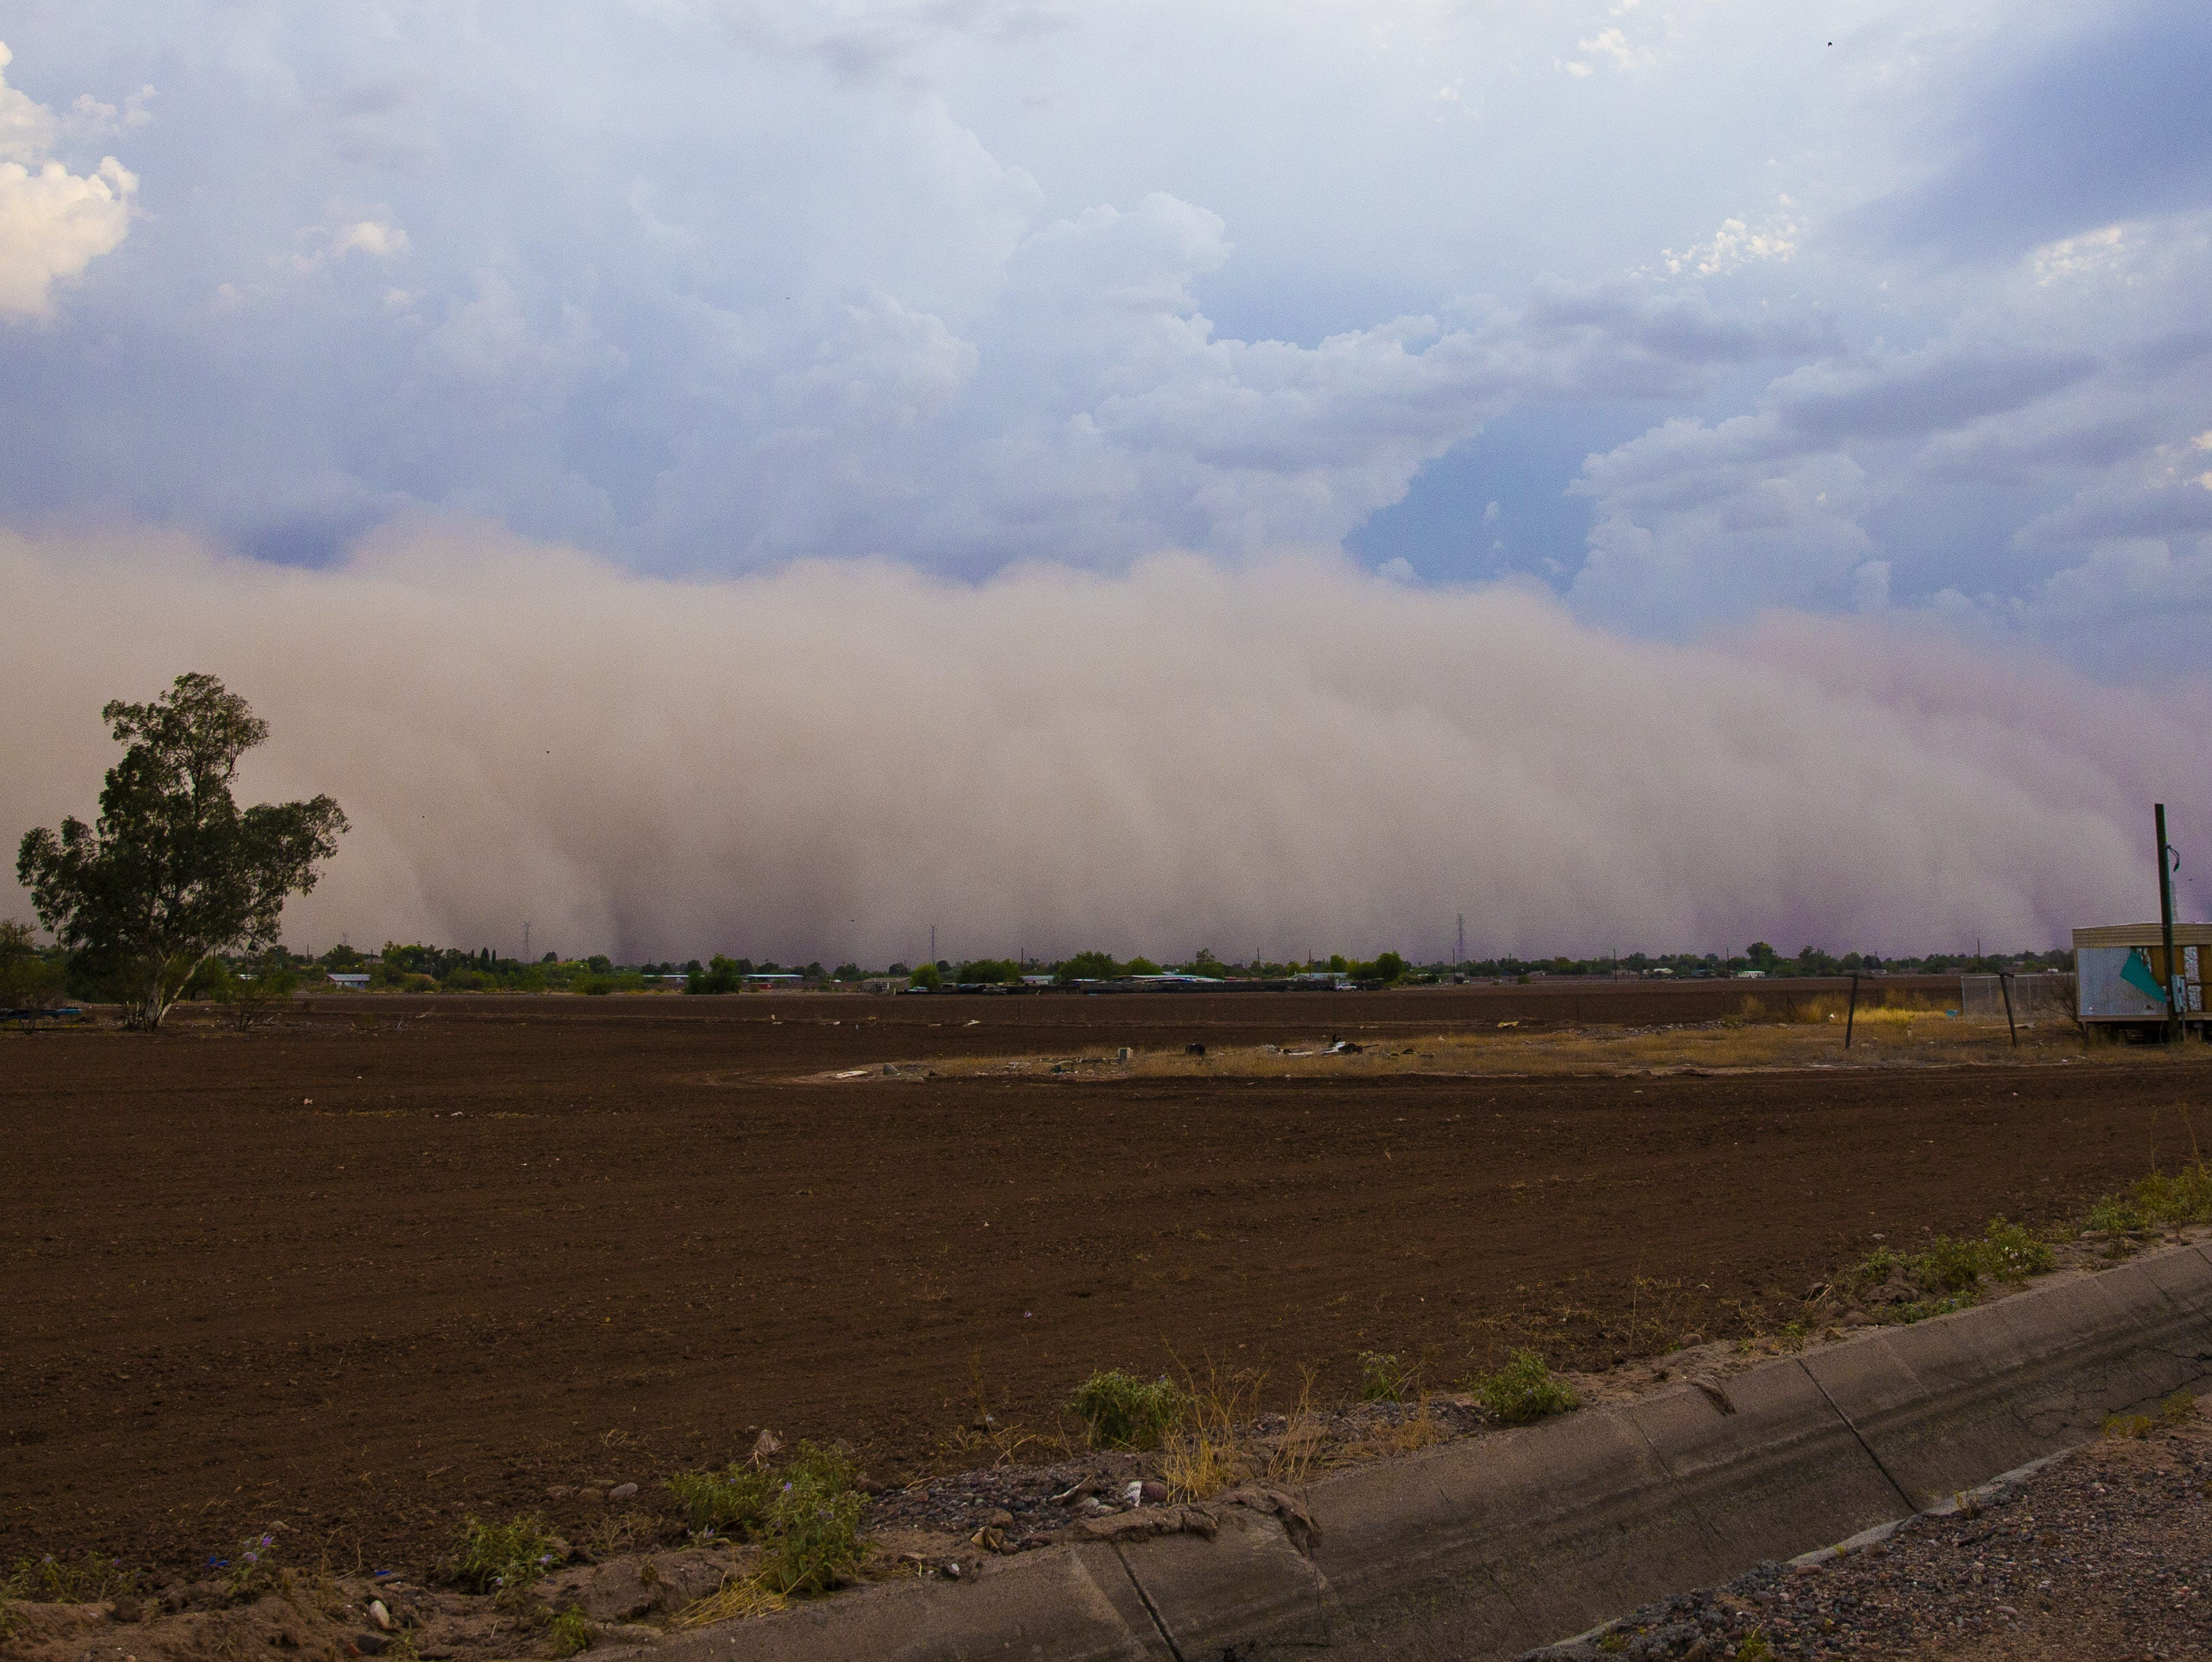 A monsoon dust storm rolls over the Salt River Pima-Maricopa Indian Reservation near Phoenix August 2, 2018.